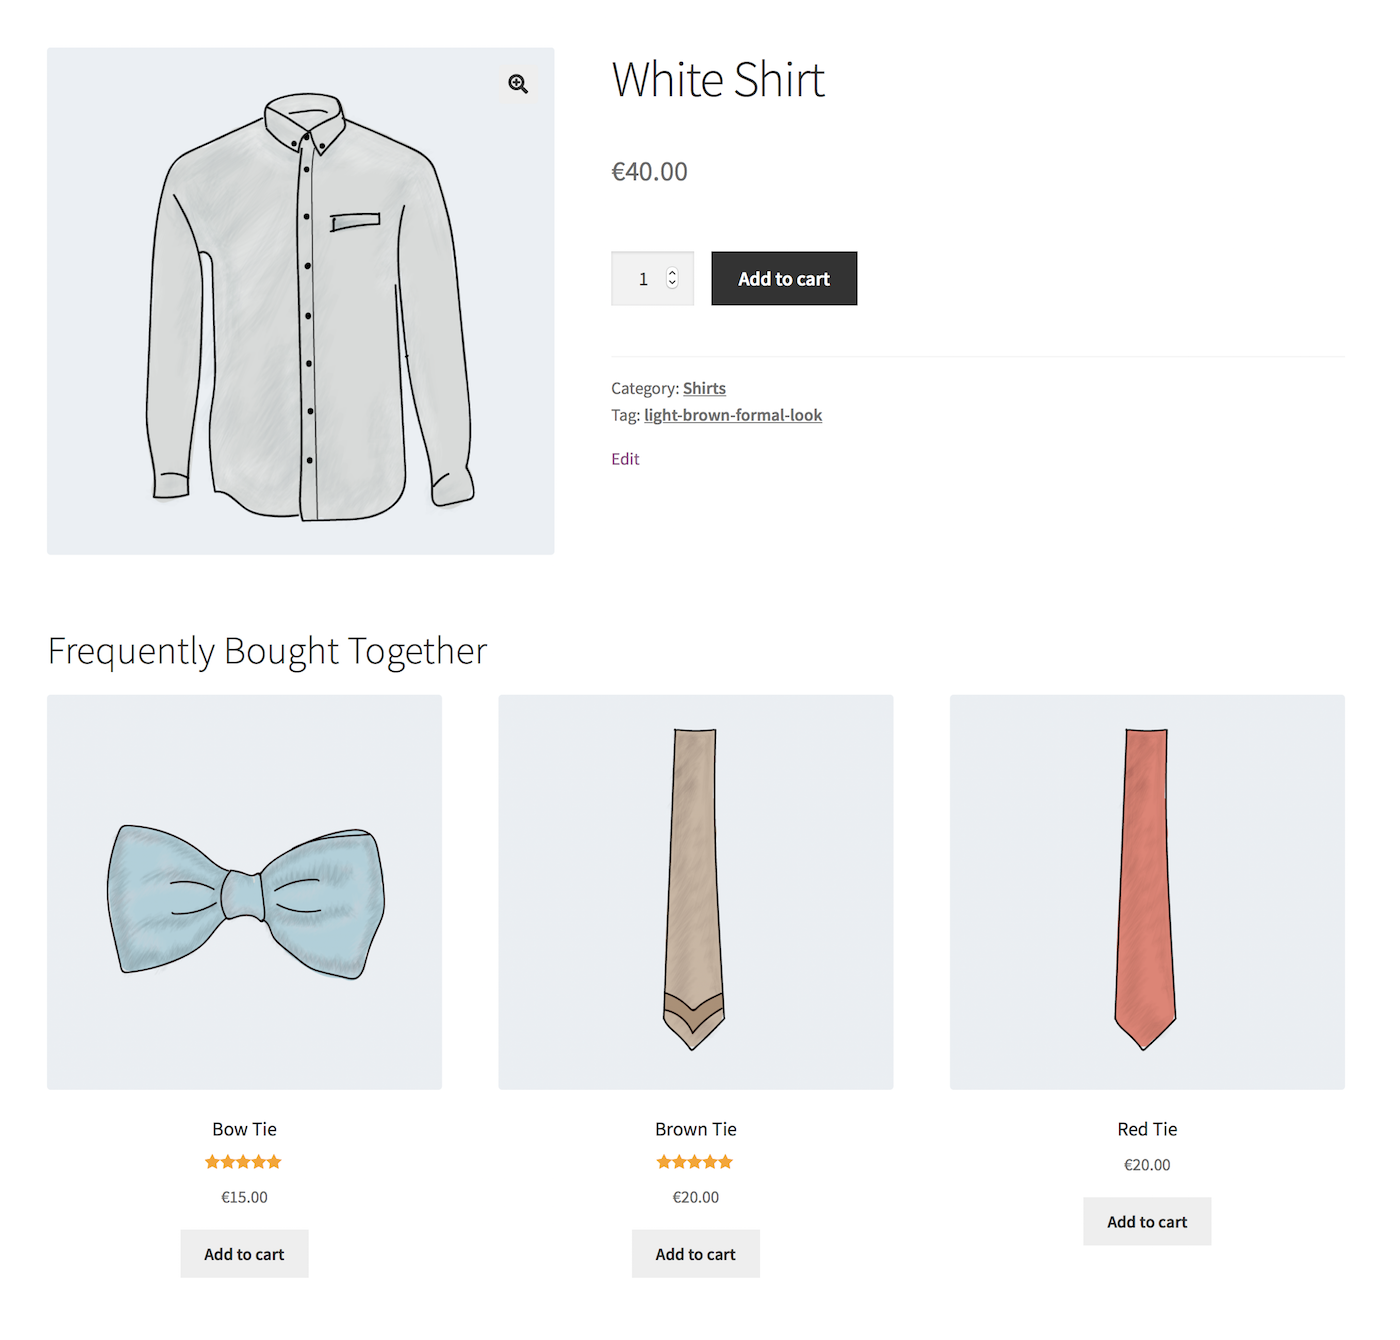 personalizar productos woocommerce